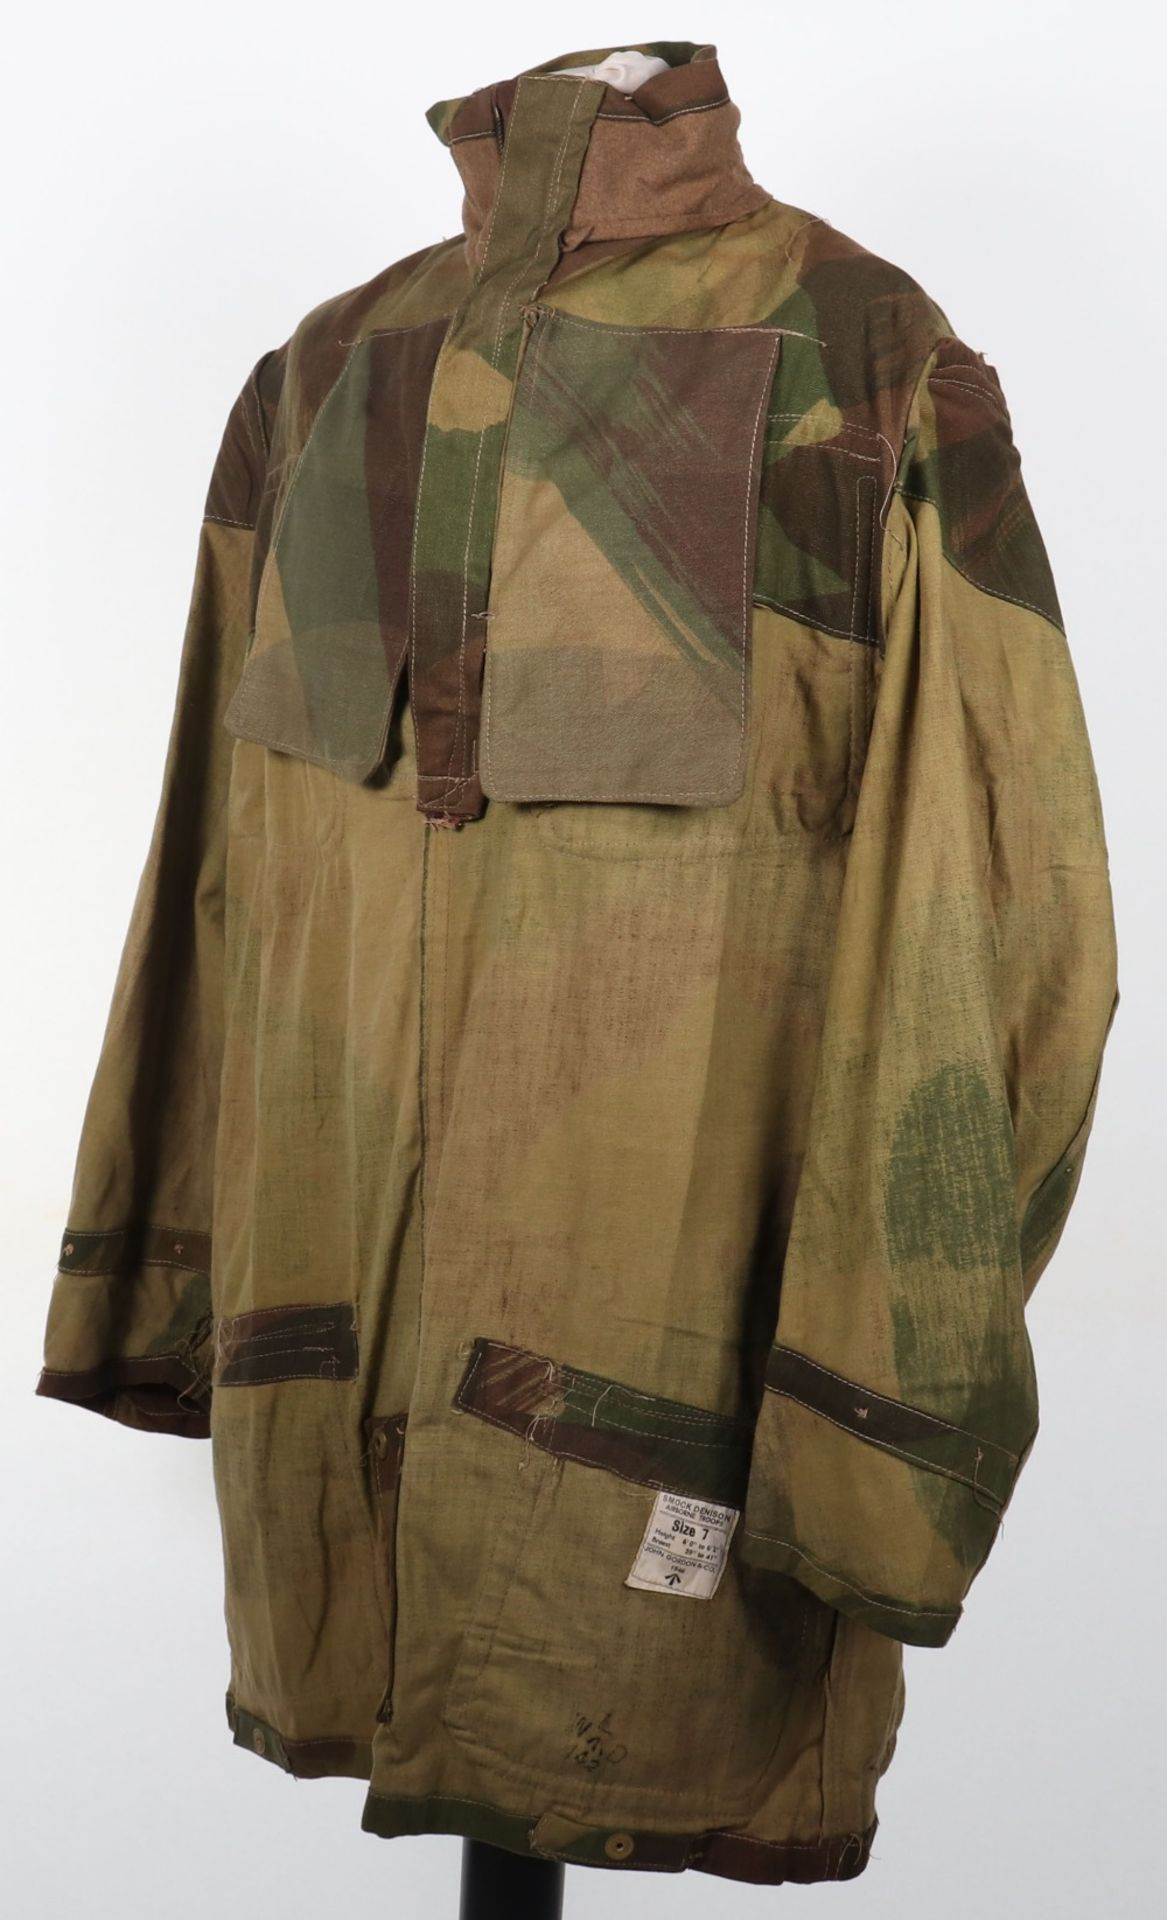 Mint Condition Large Size Airborne Forces Denison Smock - Image 16 of 17